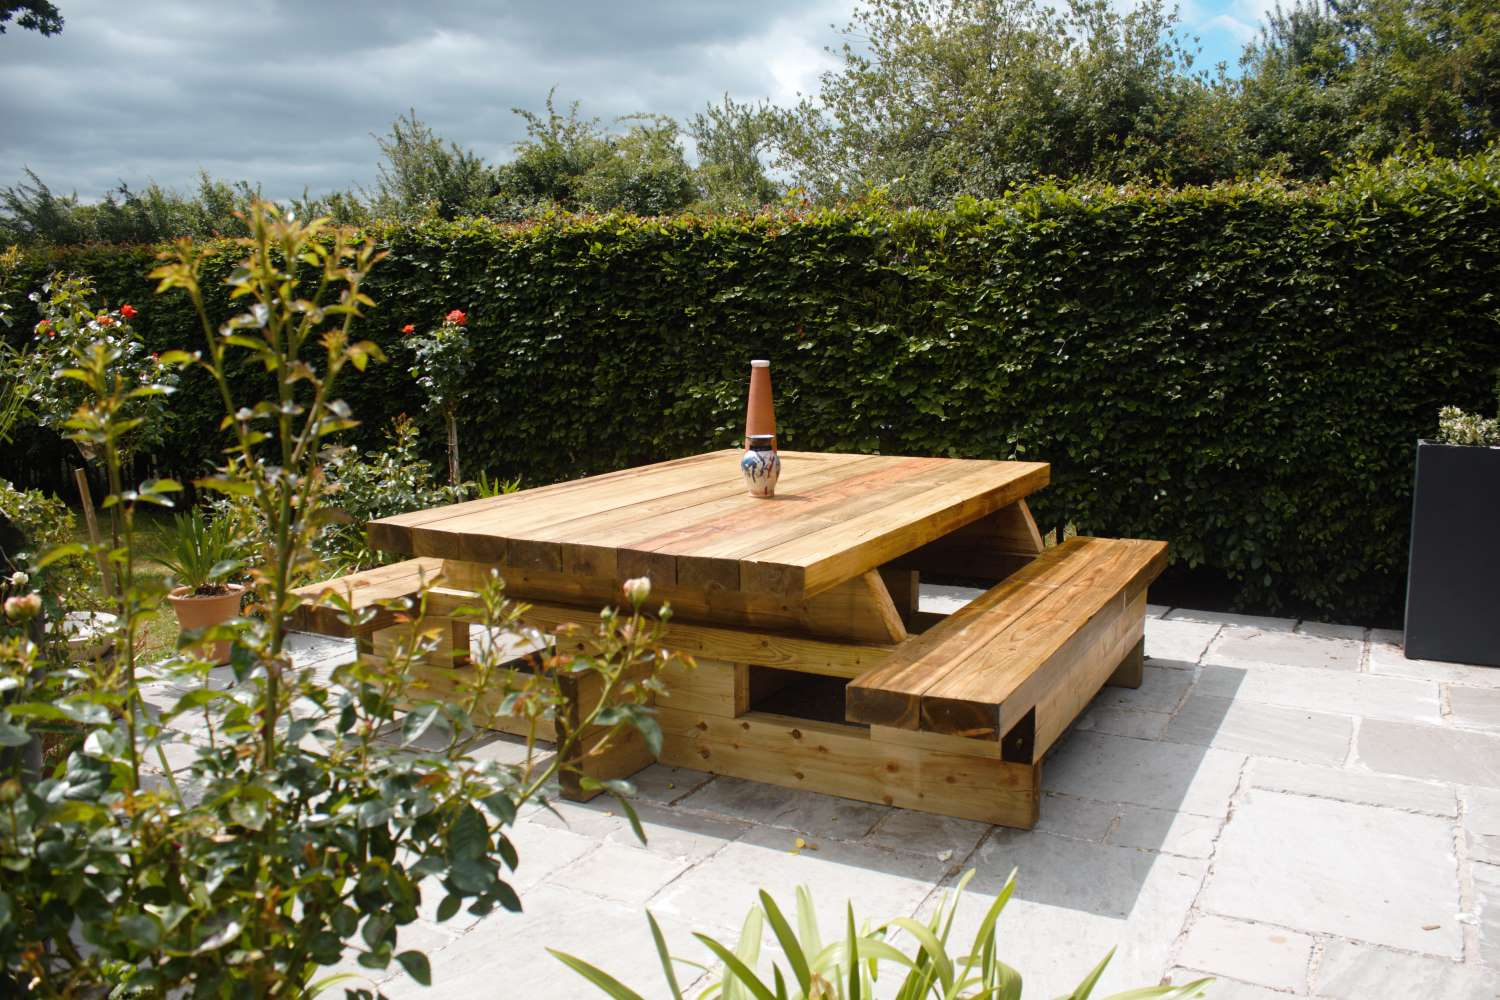 Outdoor Living structures - Bespoke Outdoors Living Ltd on Outdoor Living Ltd  id=26960